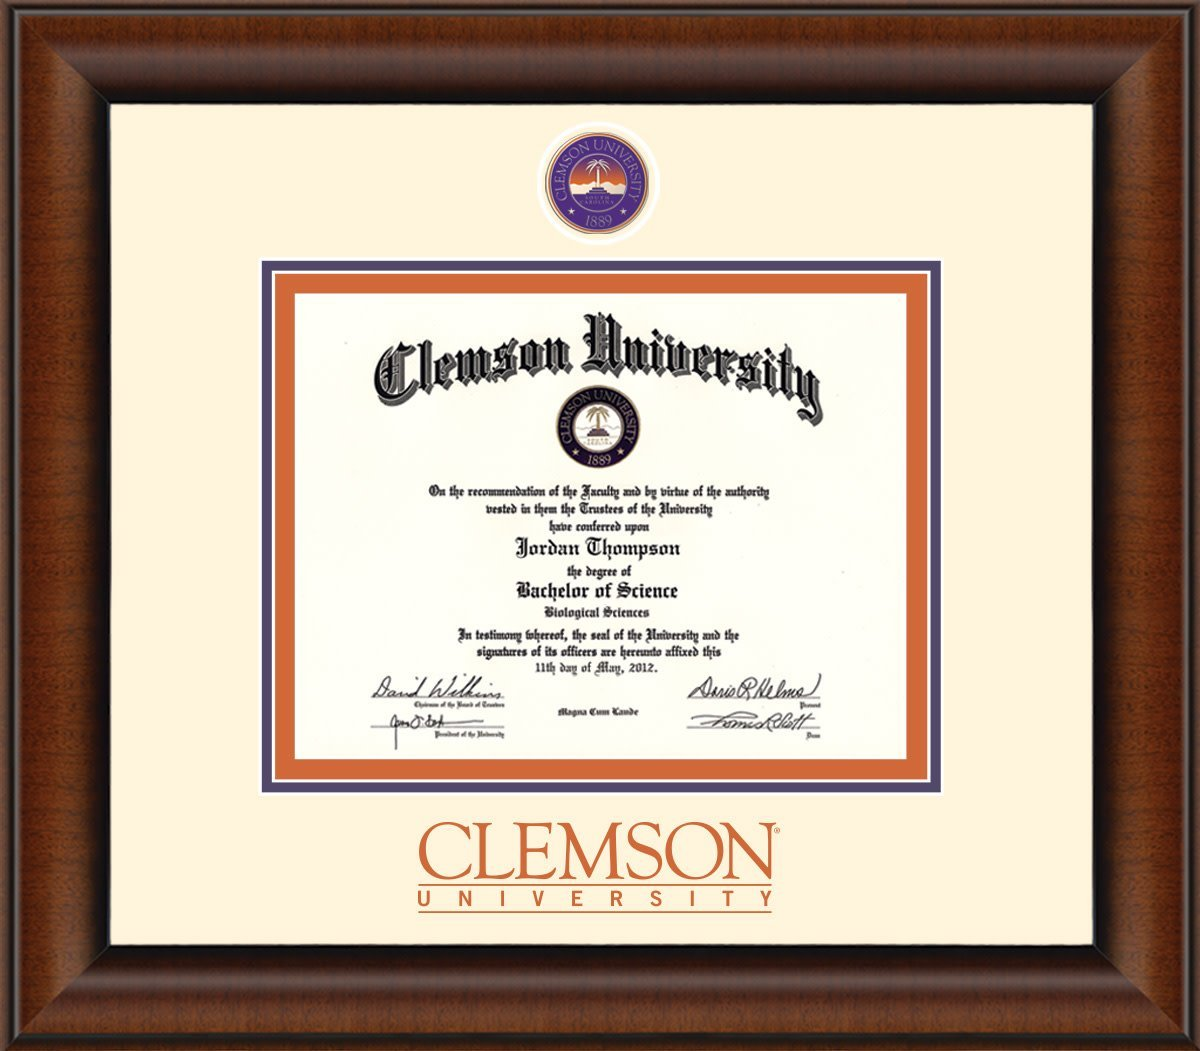 Clemson Medallion Masterpiece Diploma Frame - Mr. Knickerbocker